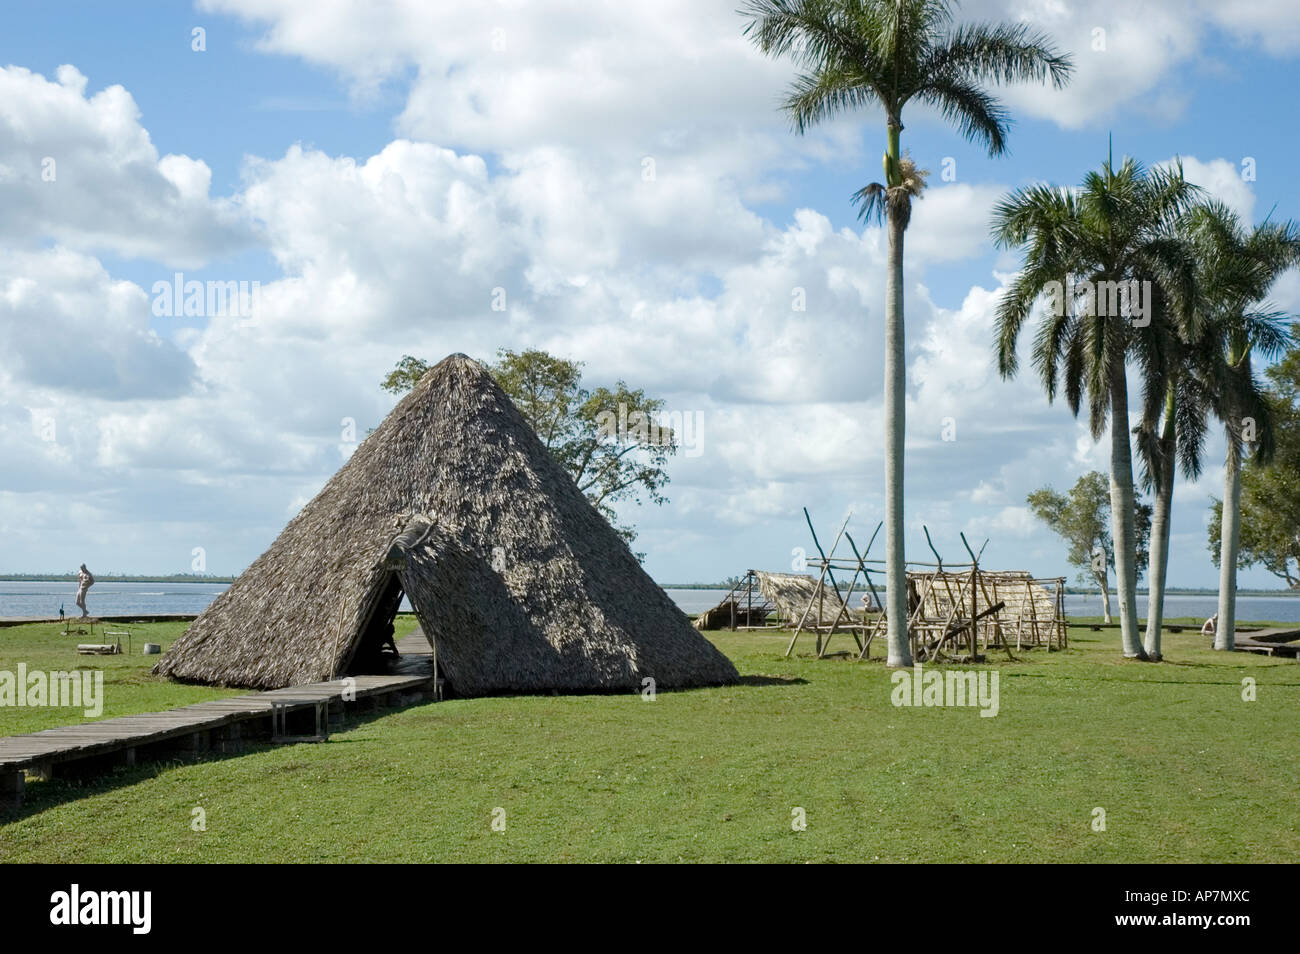 List Of Synonyms And Antonyms Of The Word Bohio Taino